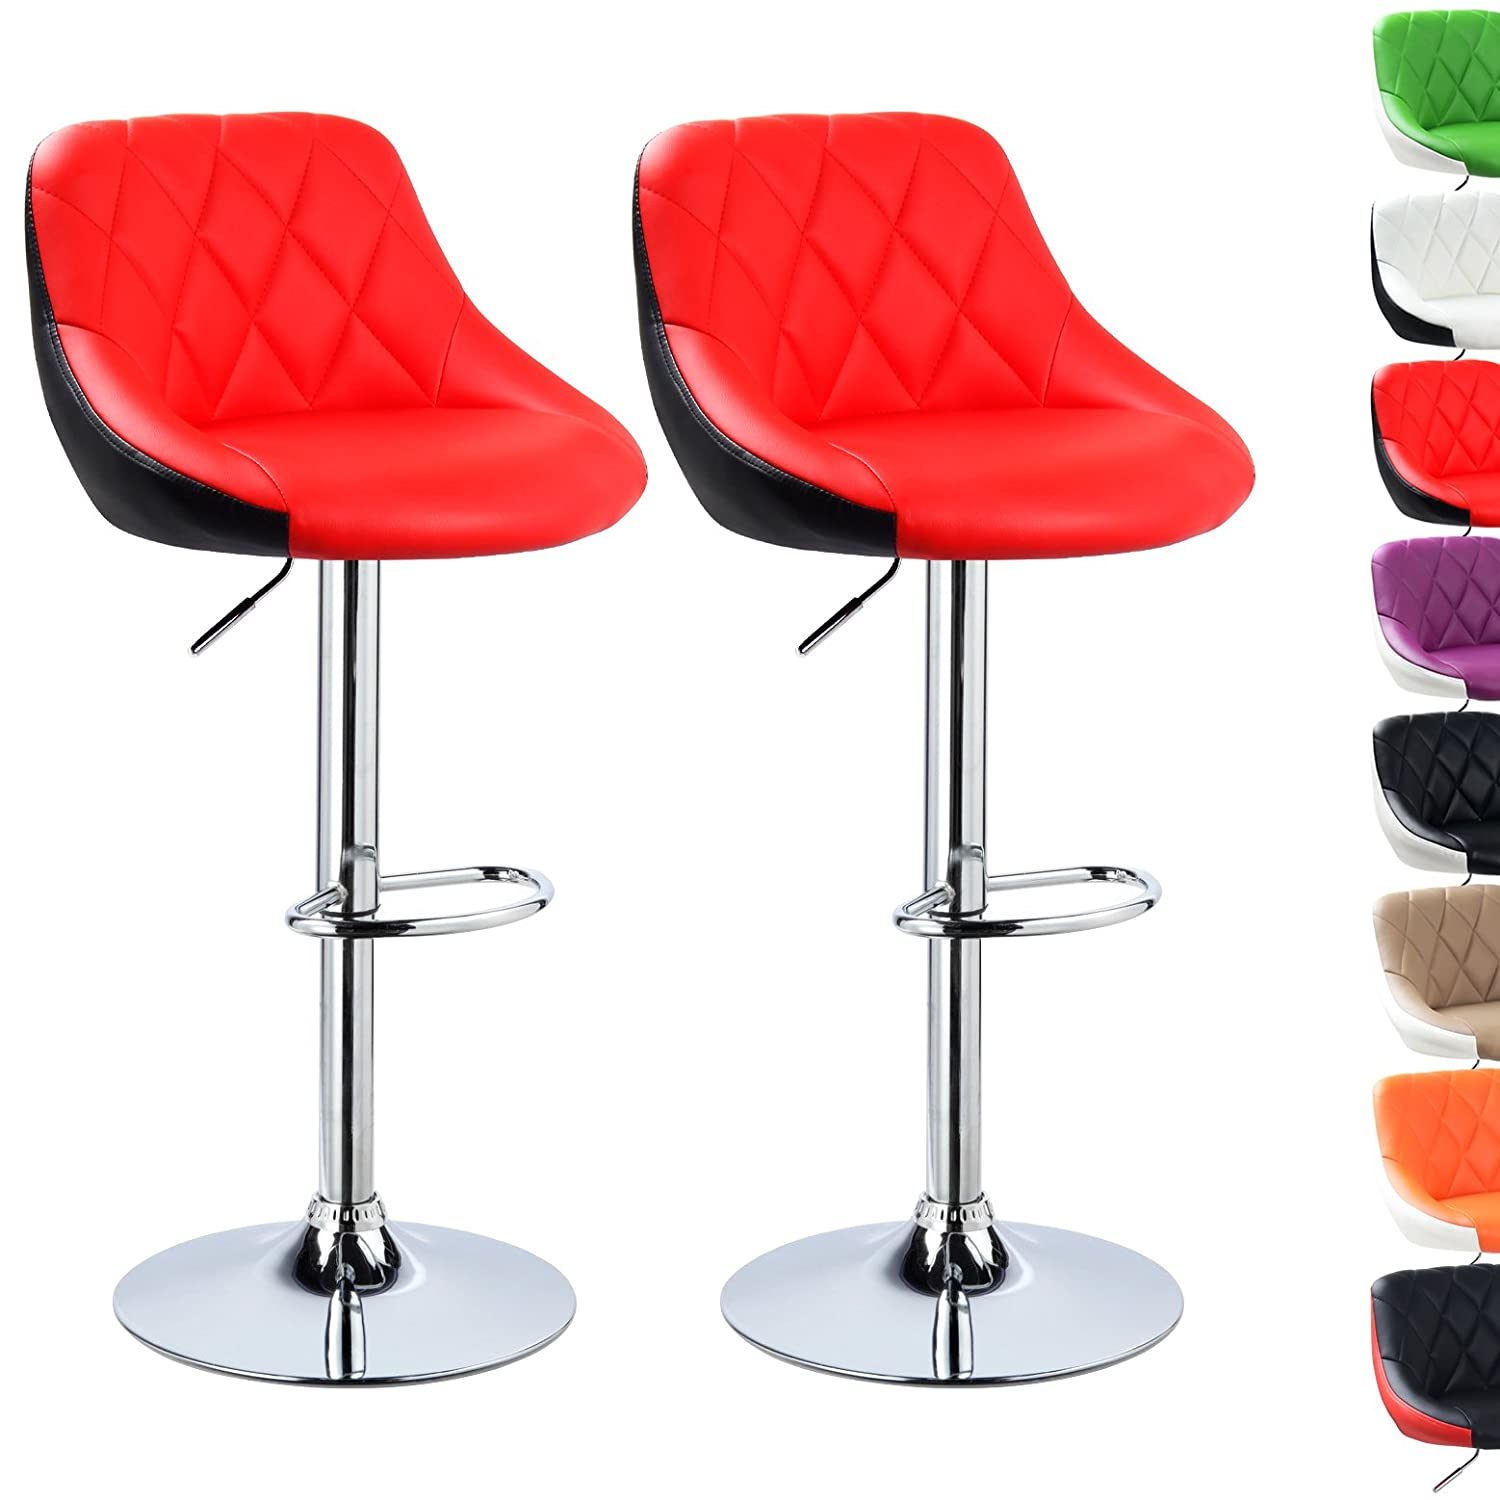 The Back Of A Chair Stool Fast Deliver The Bar Chair. Rotating Lifting Chair Hairdressing Chair Clear And Distinctive